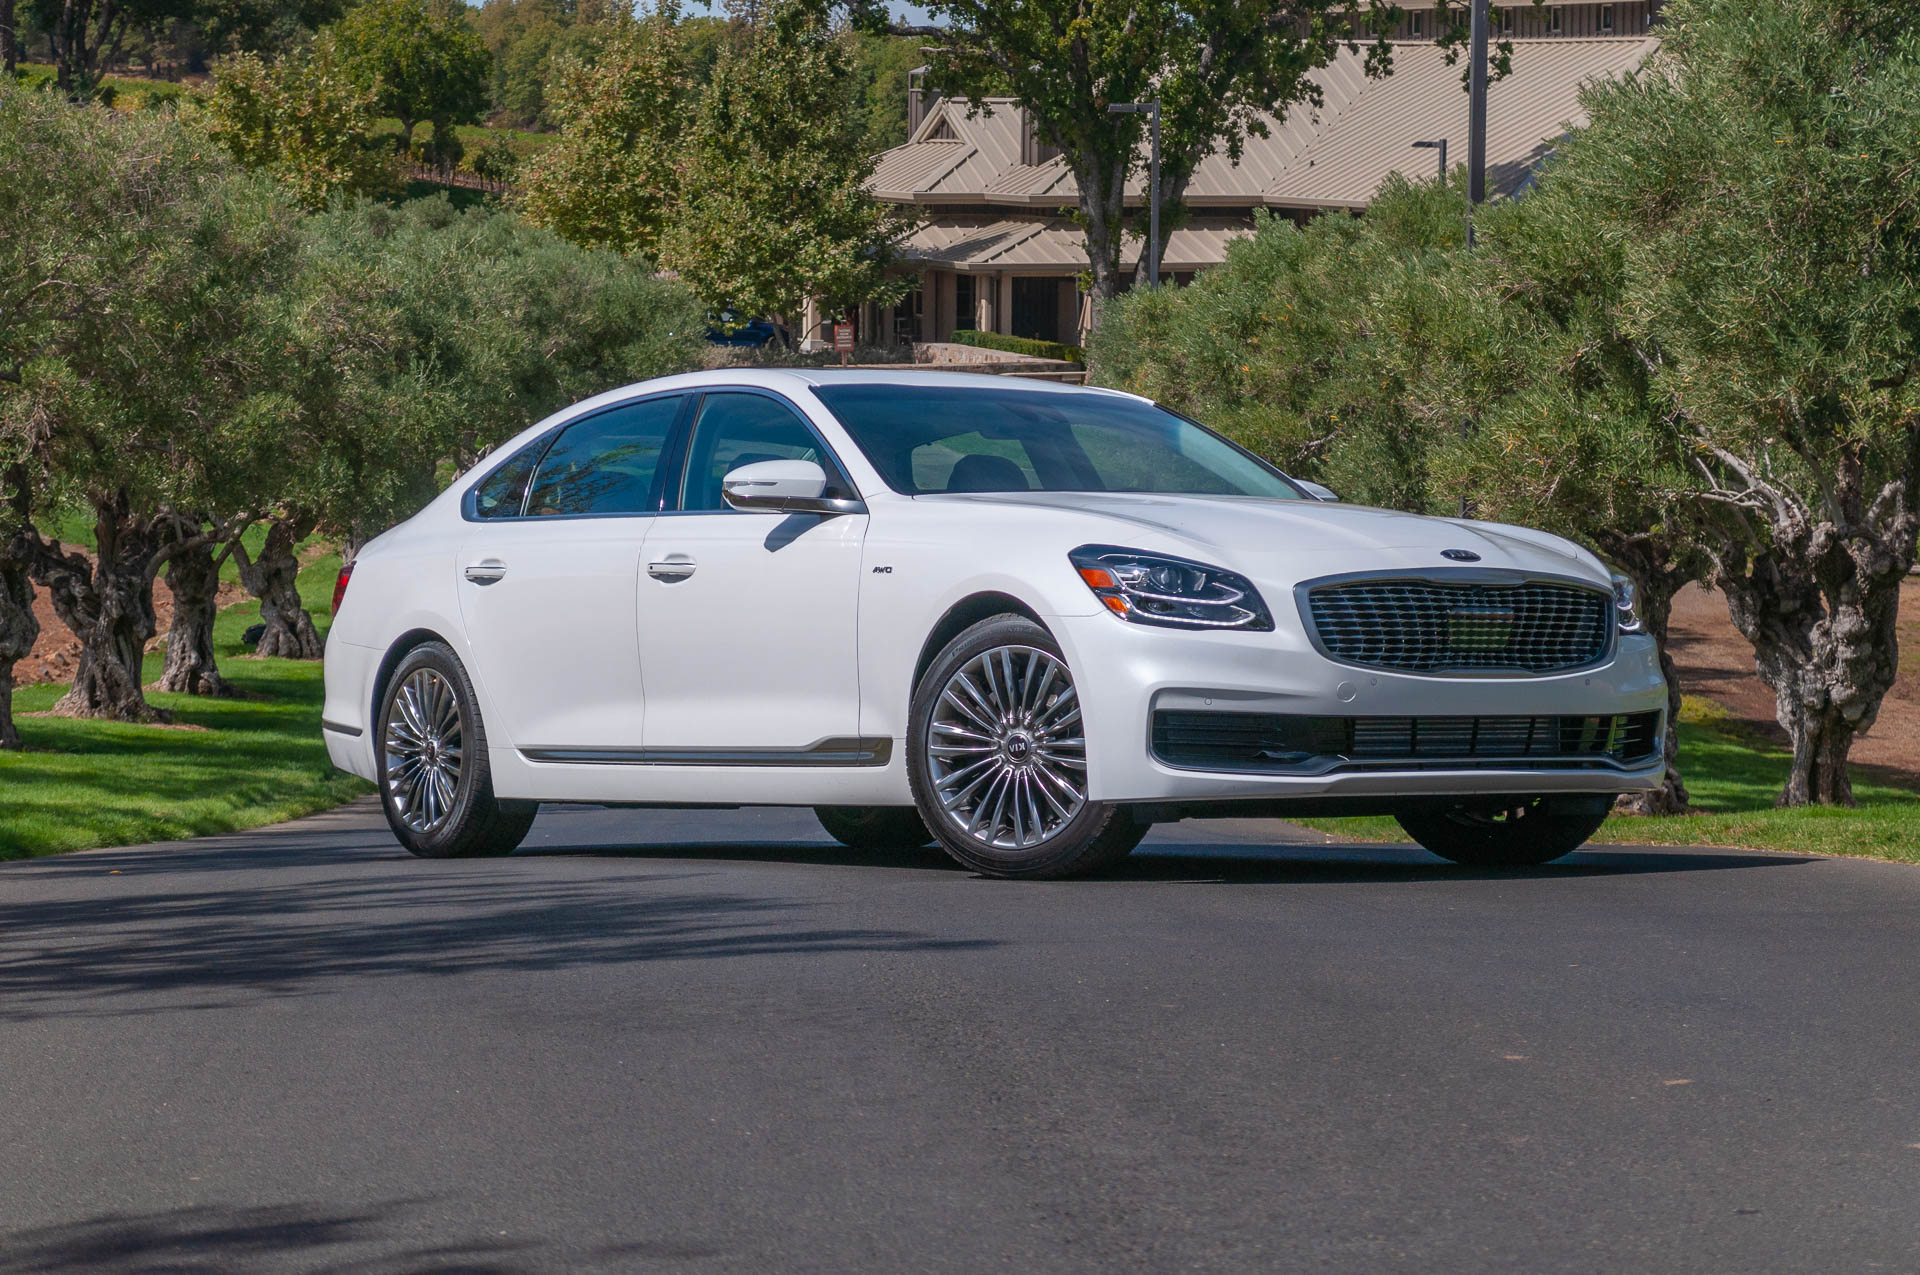 10 Reasons Why The 2019 Kia K900 Is Way Better Than Before